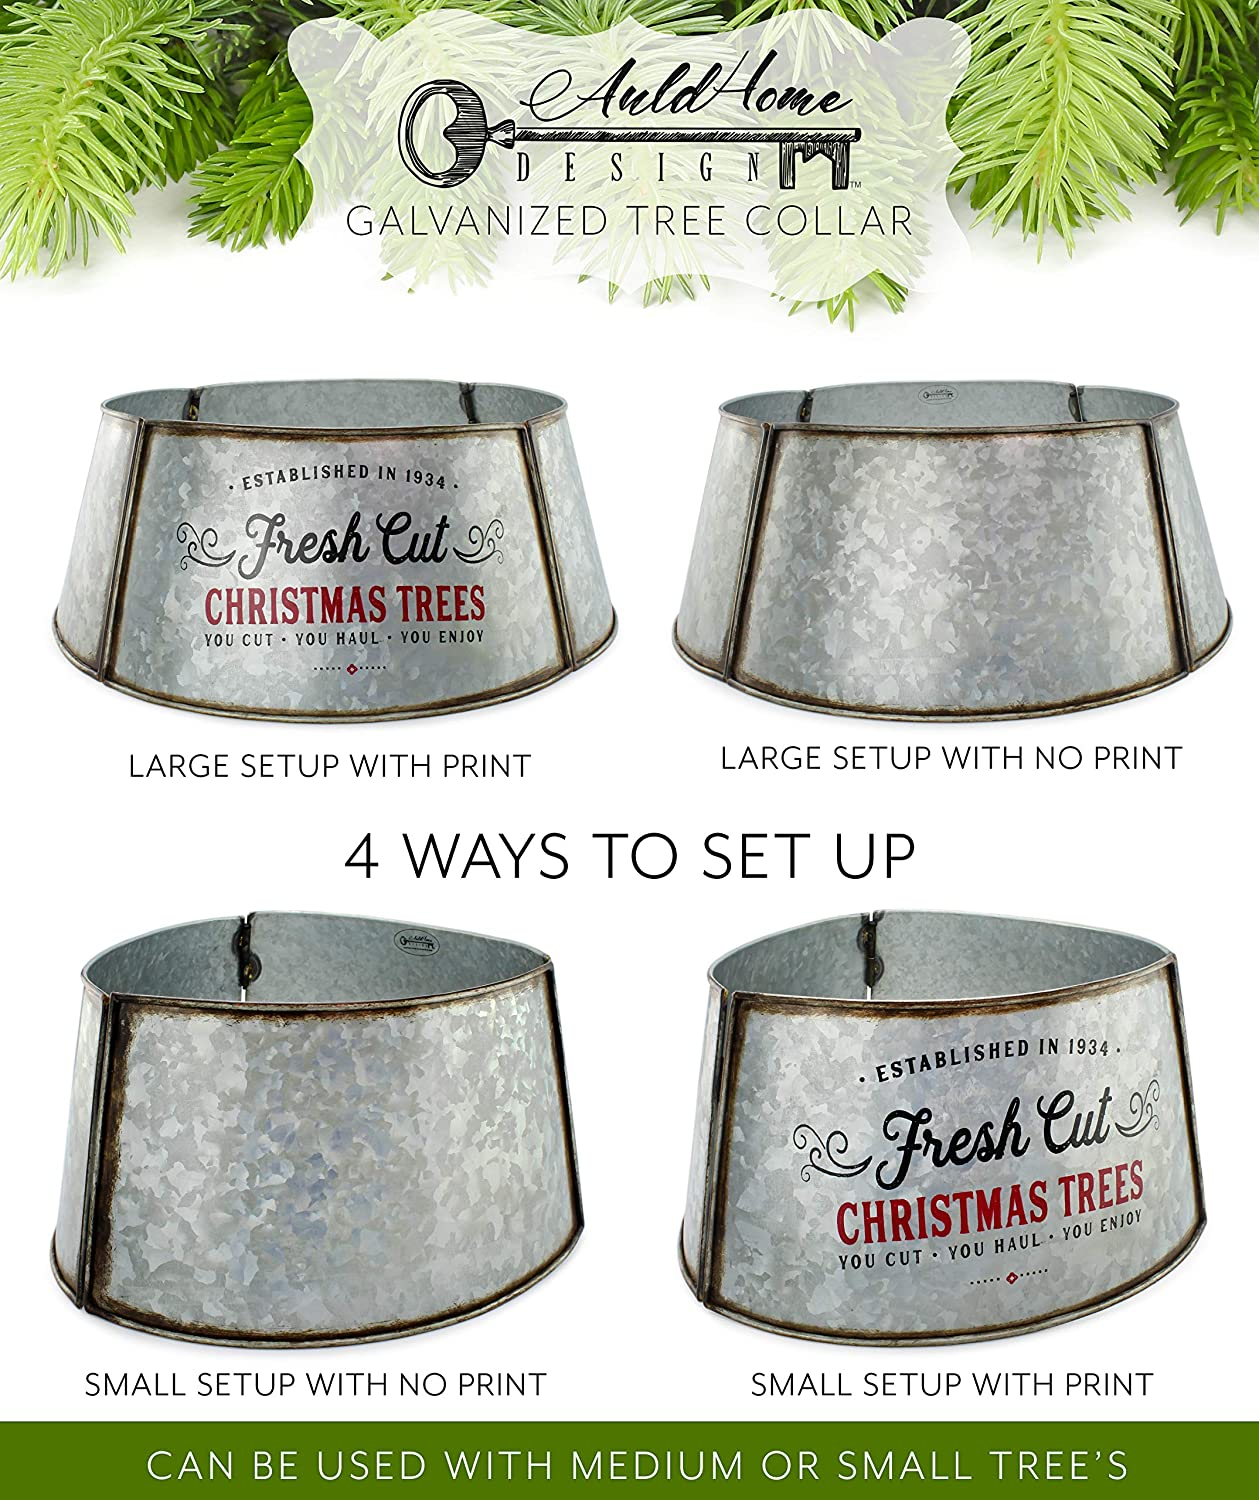 ; Small Size for Short Trees and Pencil Trees AuldHome Galvanized Metal Christmas Tree Collar 23-Inch Diameter Base